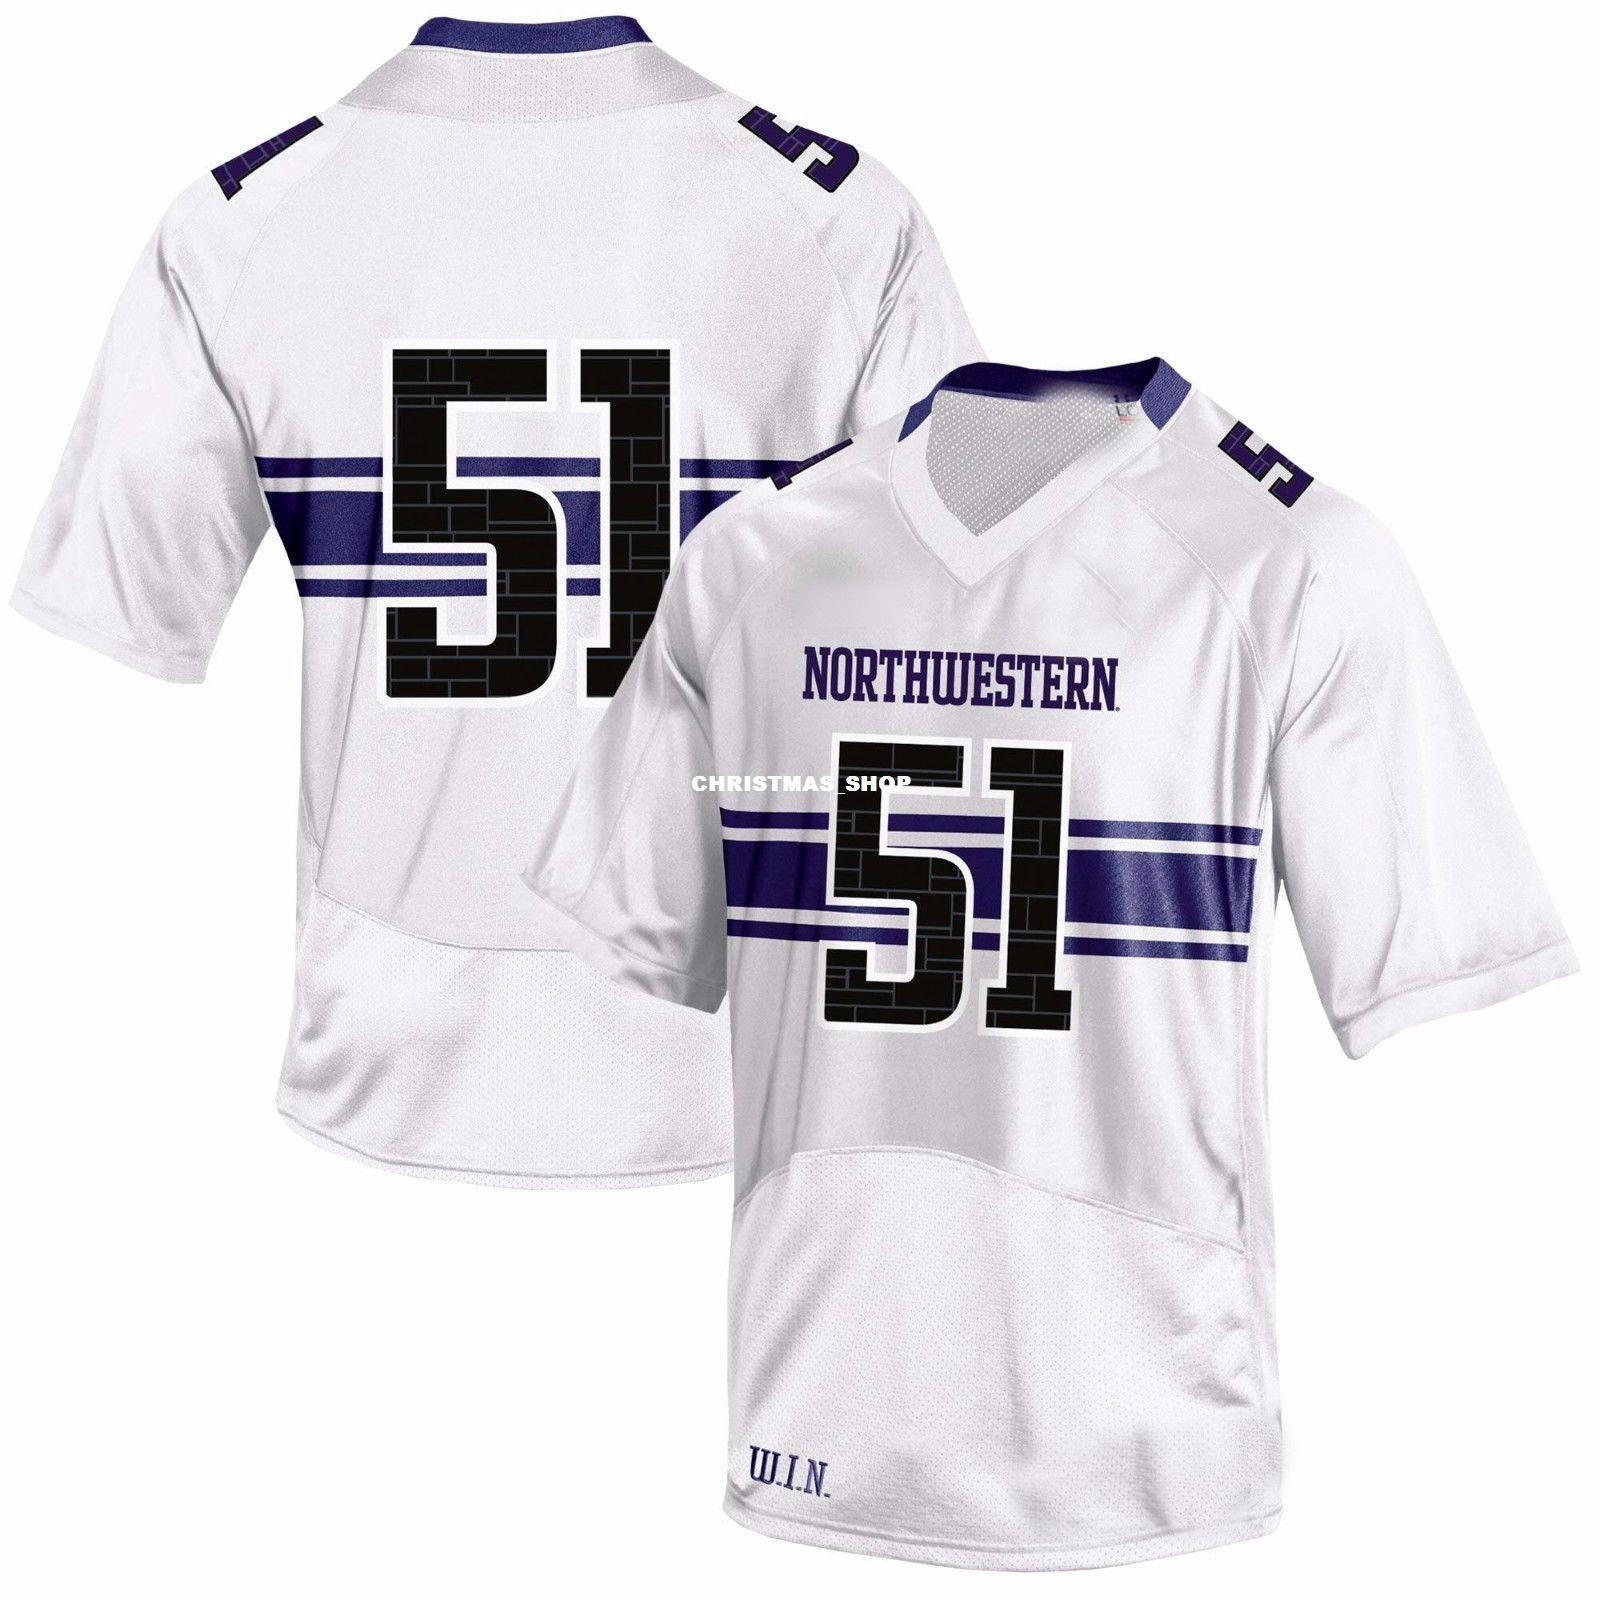 quality design ab502 efbcf Cheap custom #51 Northwestern Wildcats White Football Jersey College  Customized Any name number Stitched Jersey XS-5XL